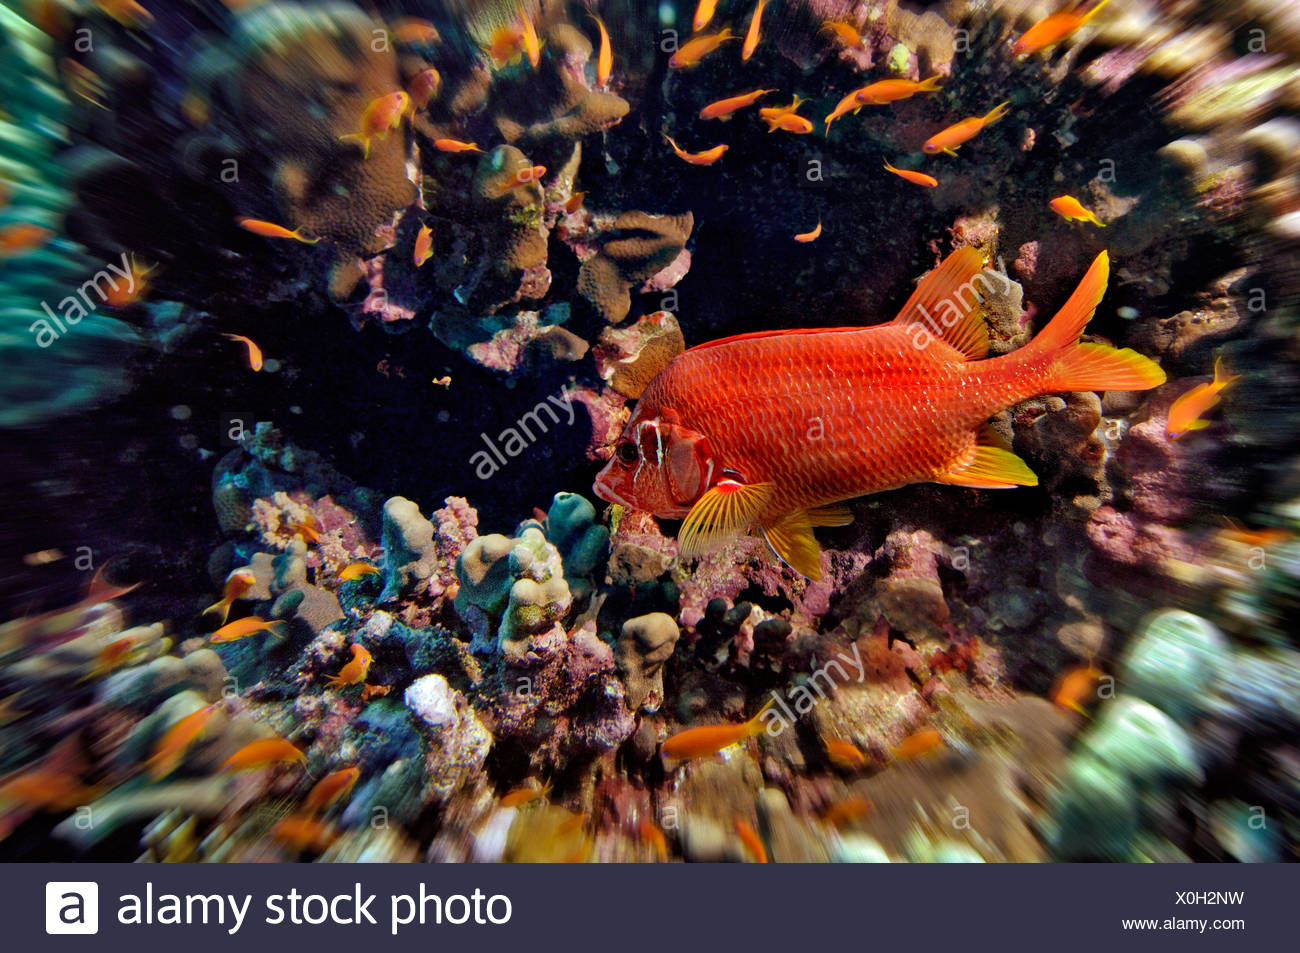 Middle East Egypt Red Sea, Basslets, Anthiinae and Long jawed Squirrelfish, Sargocentron spiniferum - Stock Image